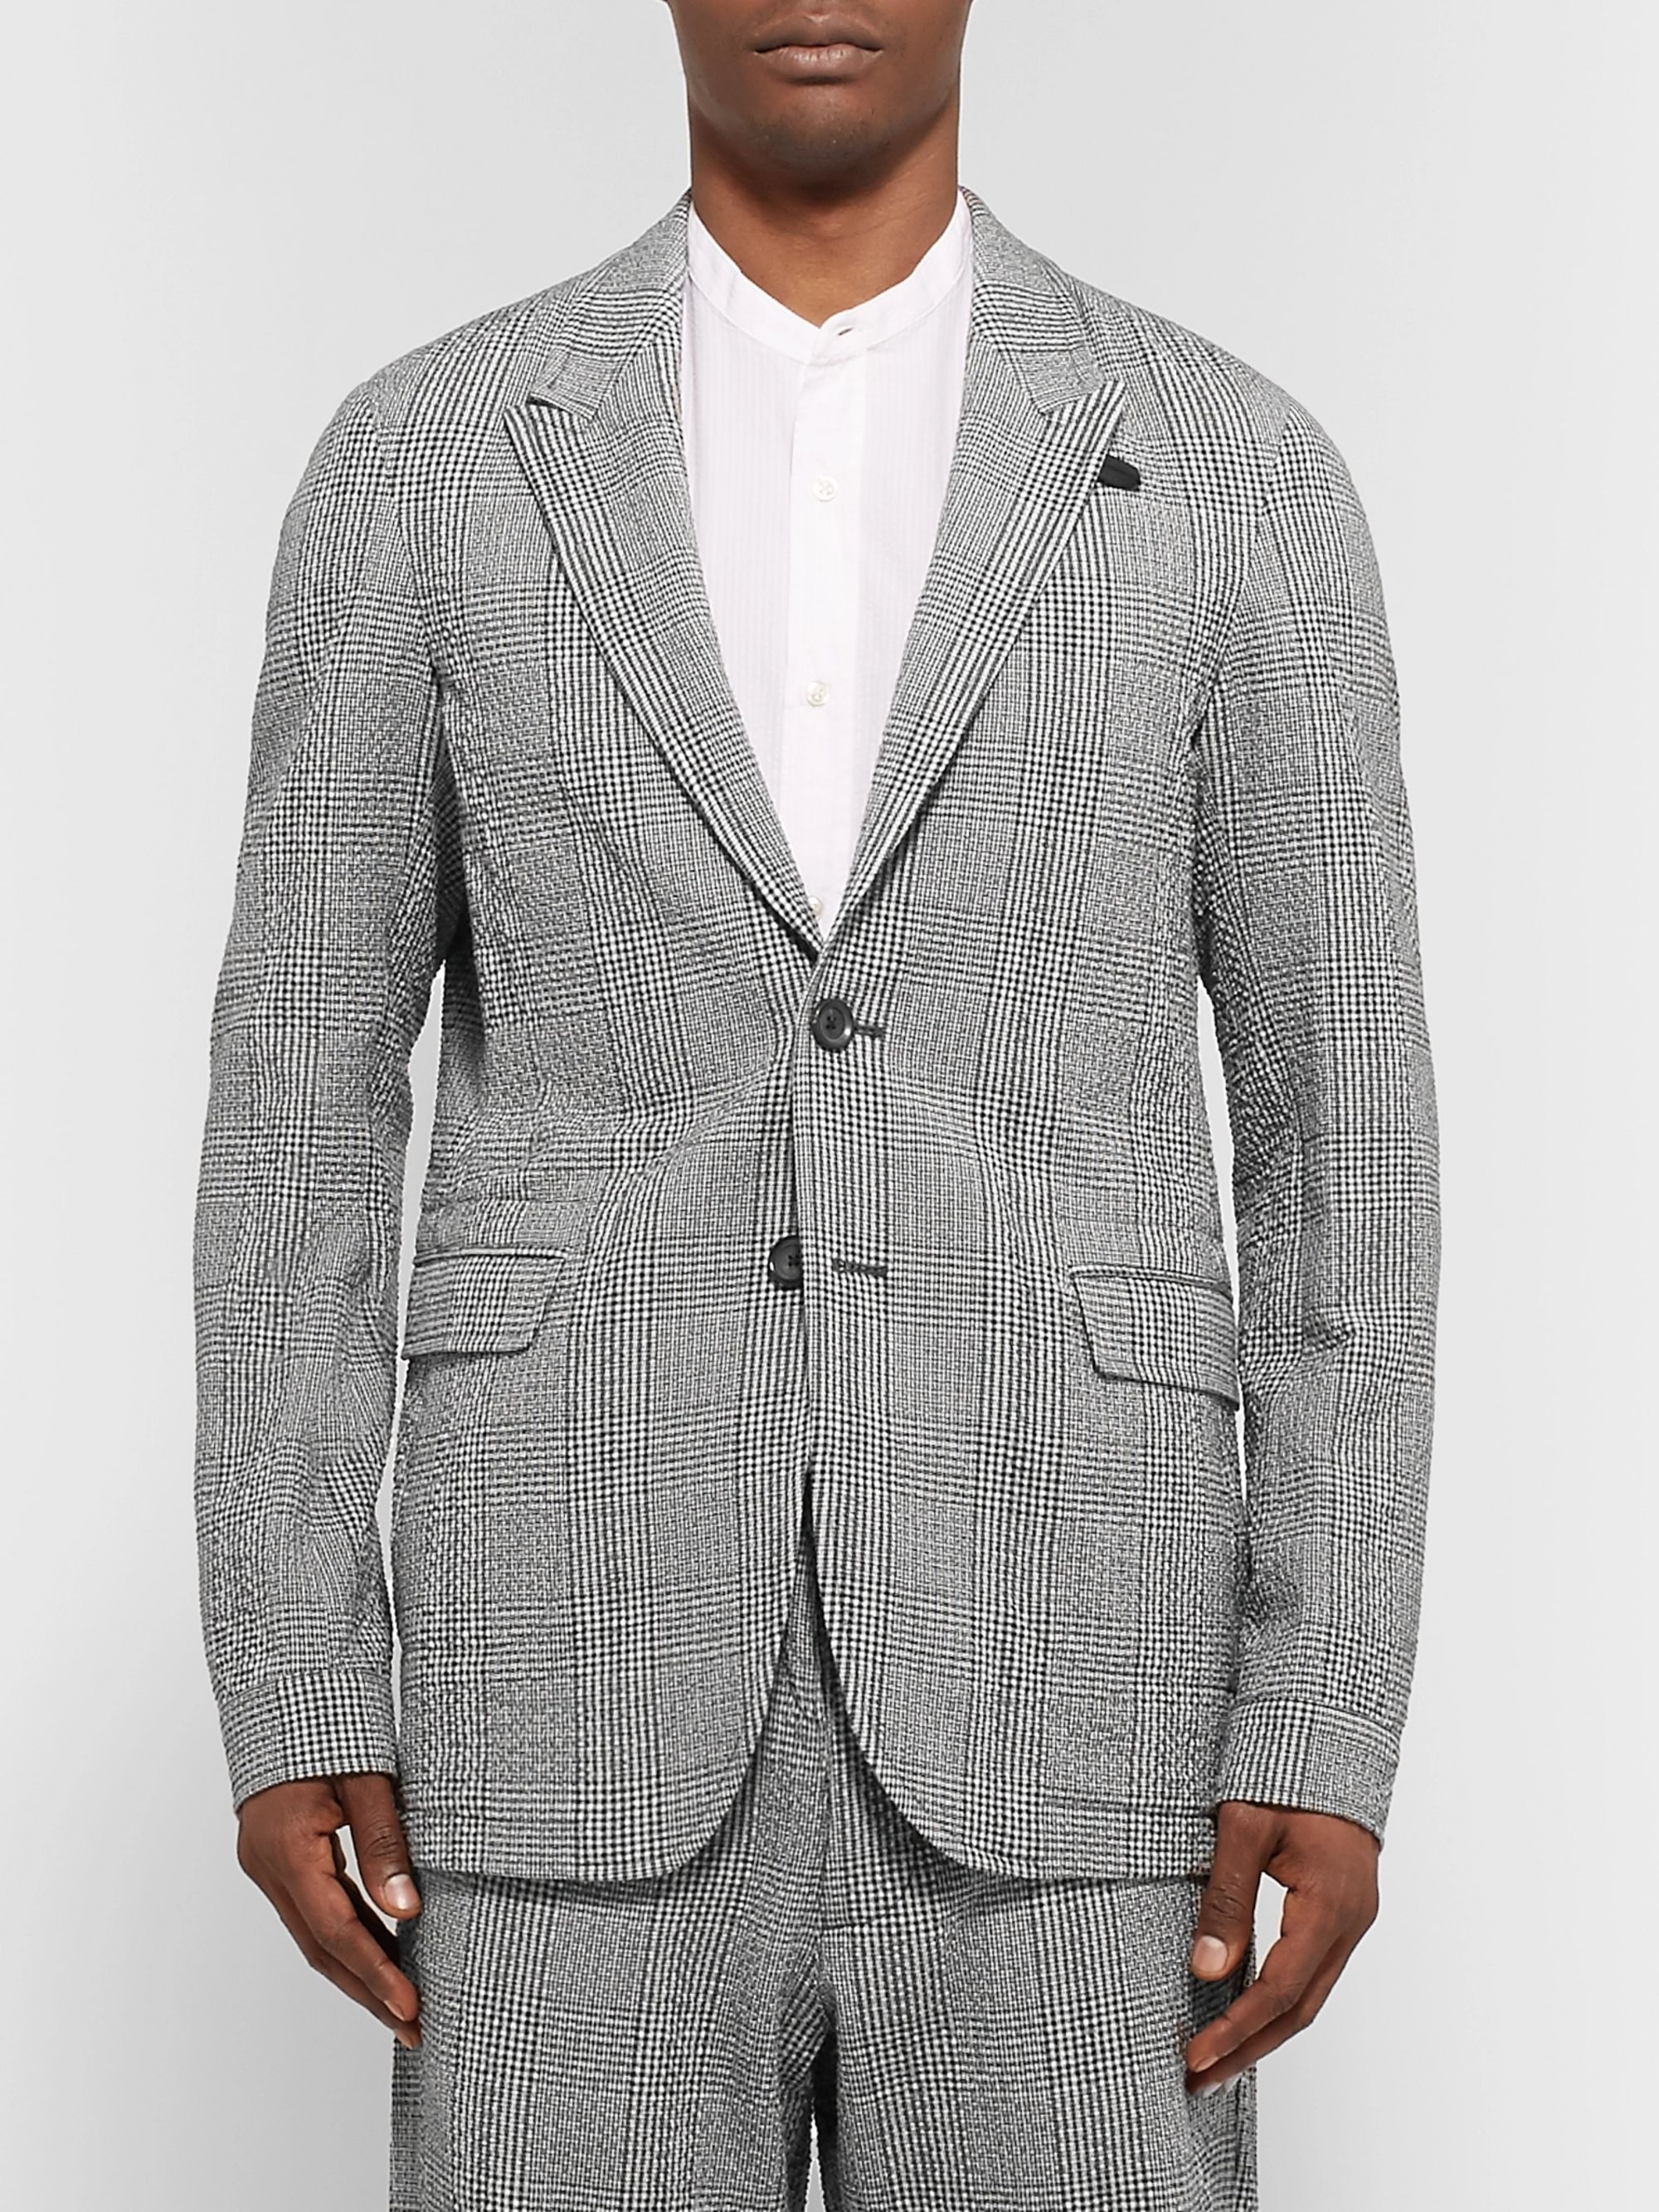 Oliver Spencer Midnight-Blue Brookes Slim-Fit Checked Cotton-Blend Seersucker Suit Jacket